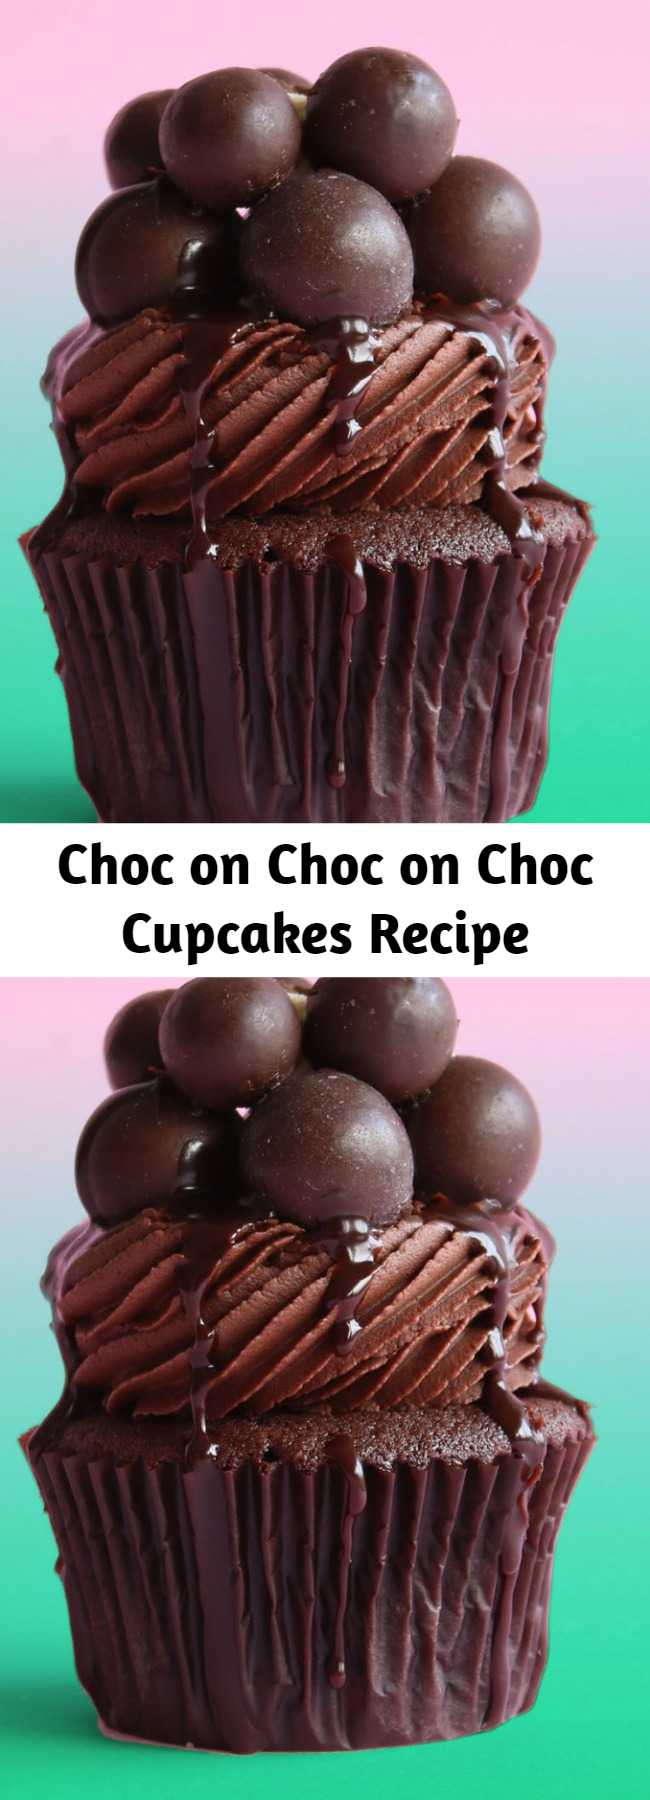 Choc on Choc on Choc Cupcakes Recipe - There's so much chocolate happening here it could be a crime, but thank heavens it's not.